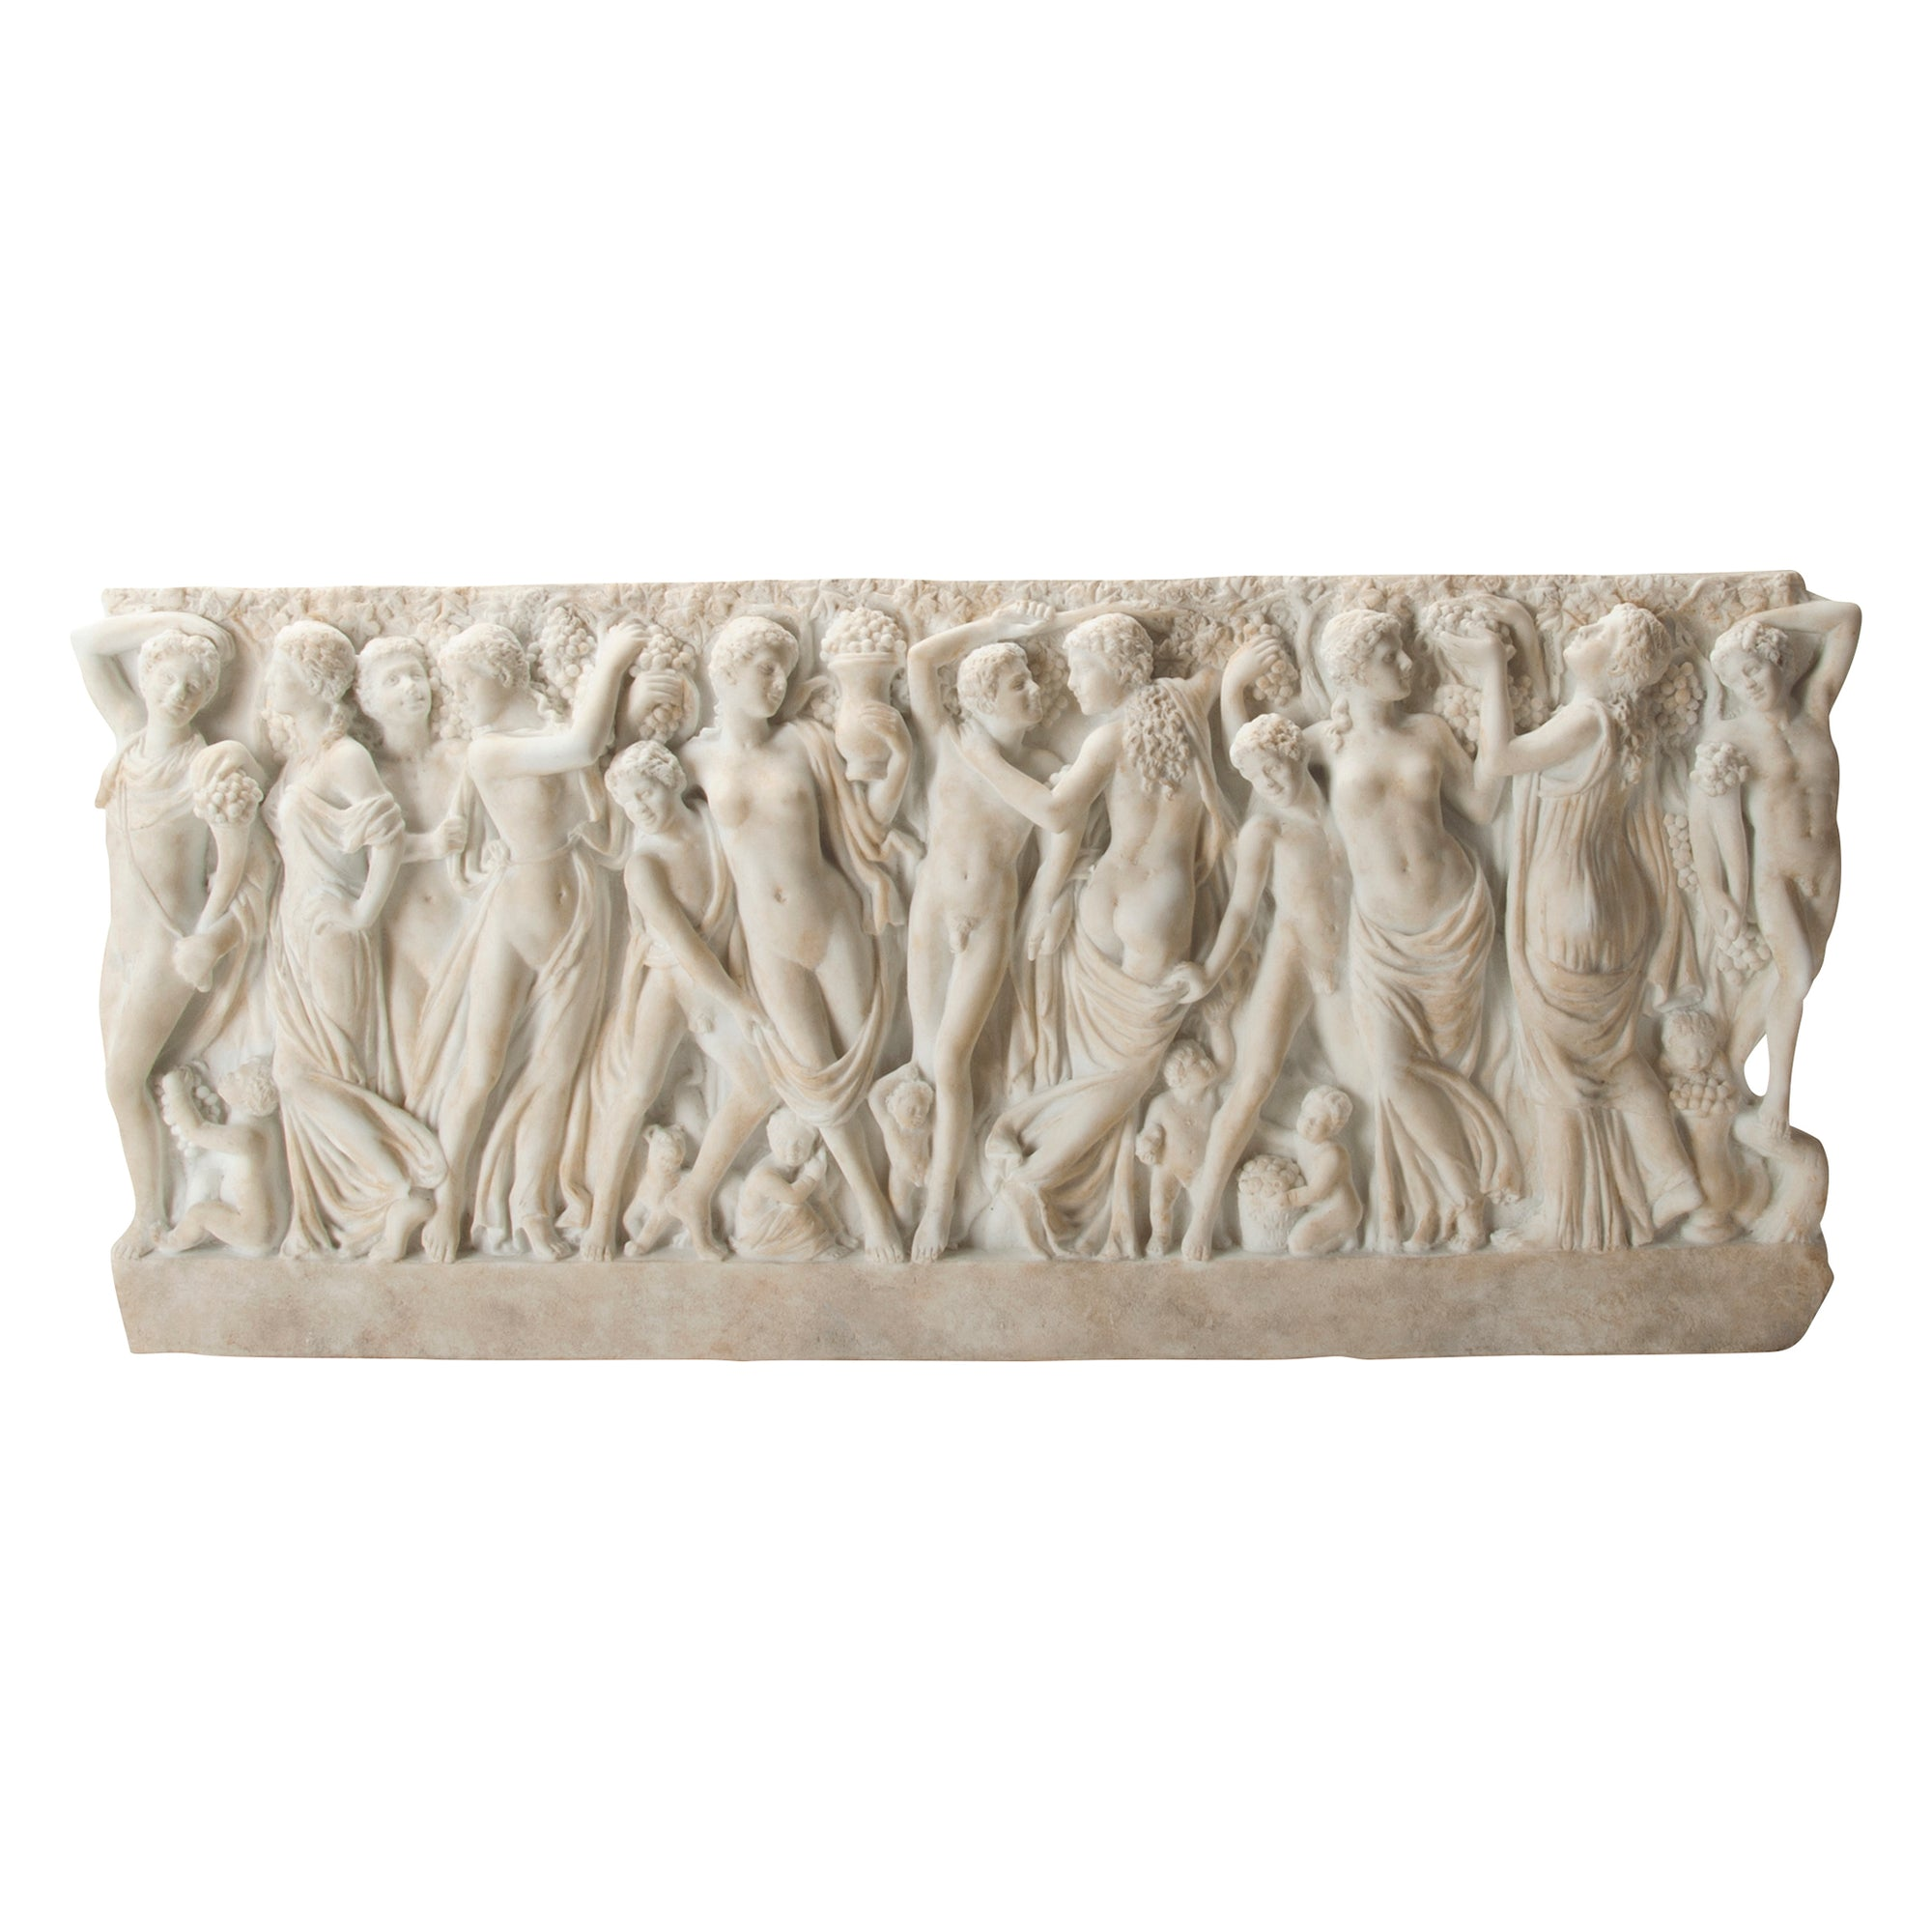 Farnese Sarcophagus with Revelers Gathering Grapes - Plaque | Getty Store